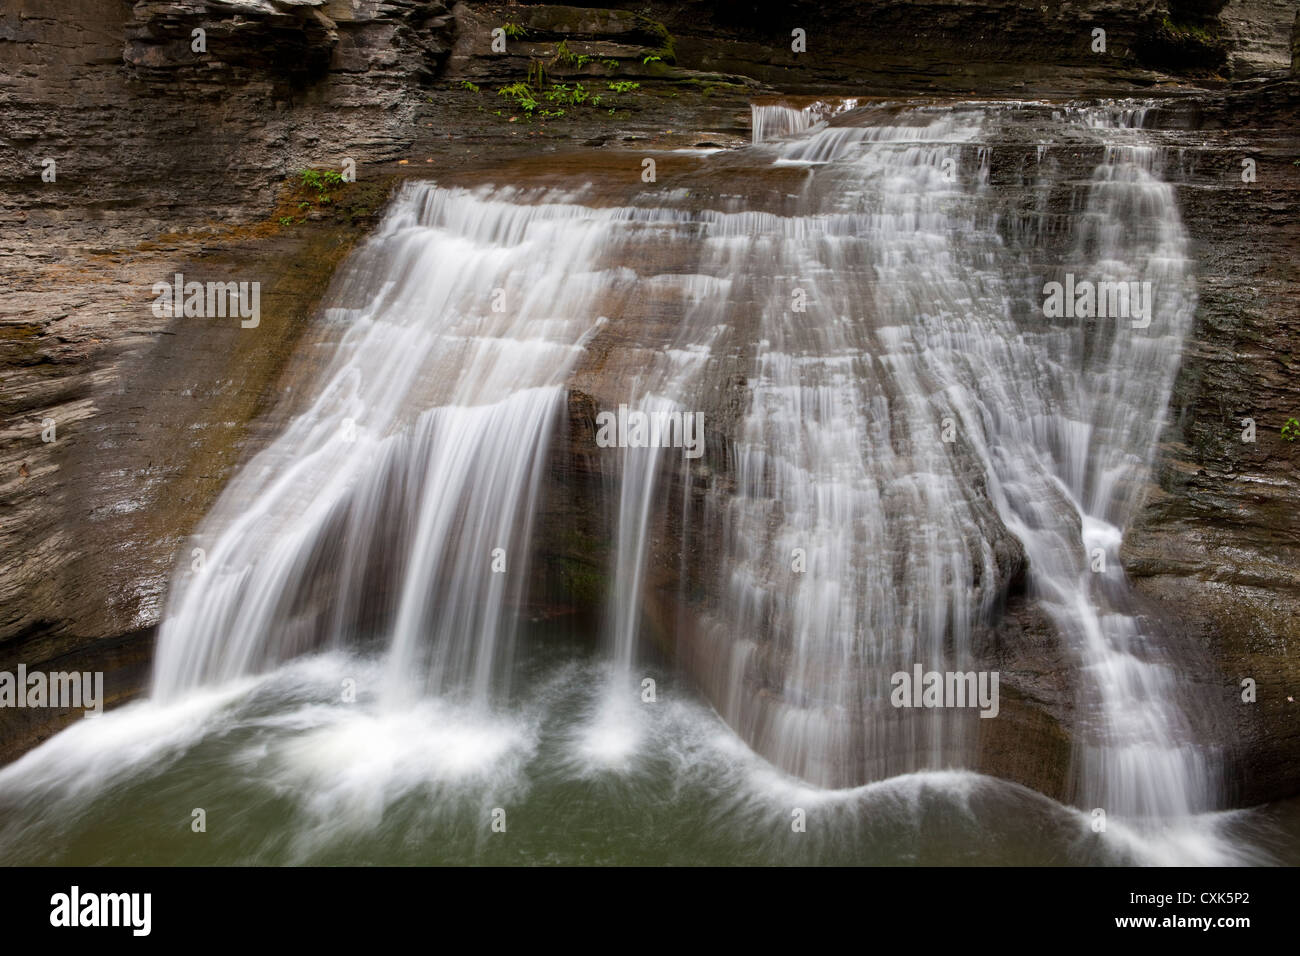 Buttermilk Falls State Park, Ithaca, New York - Stock Image